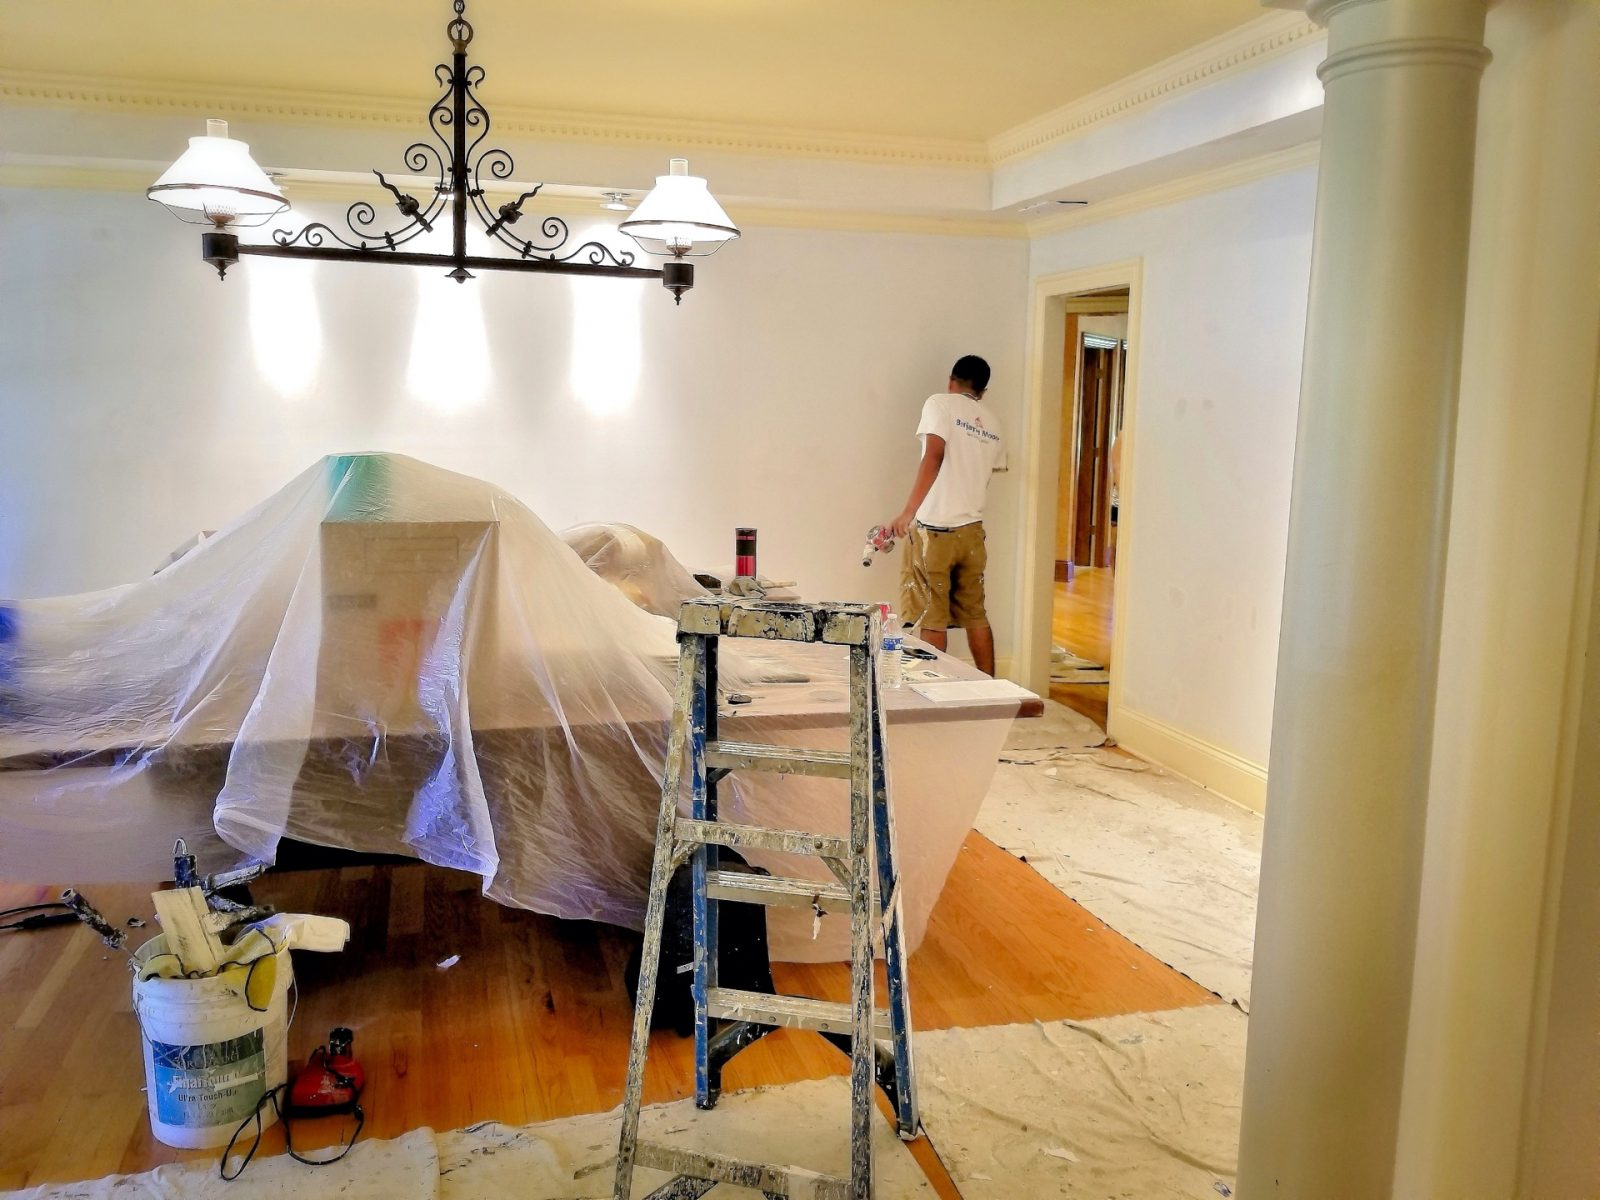 Painting and decorating Services Painters paint a room during a remodel